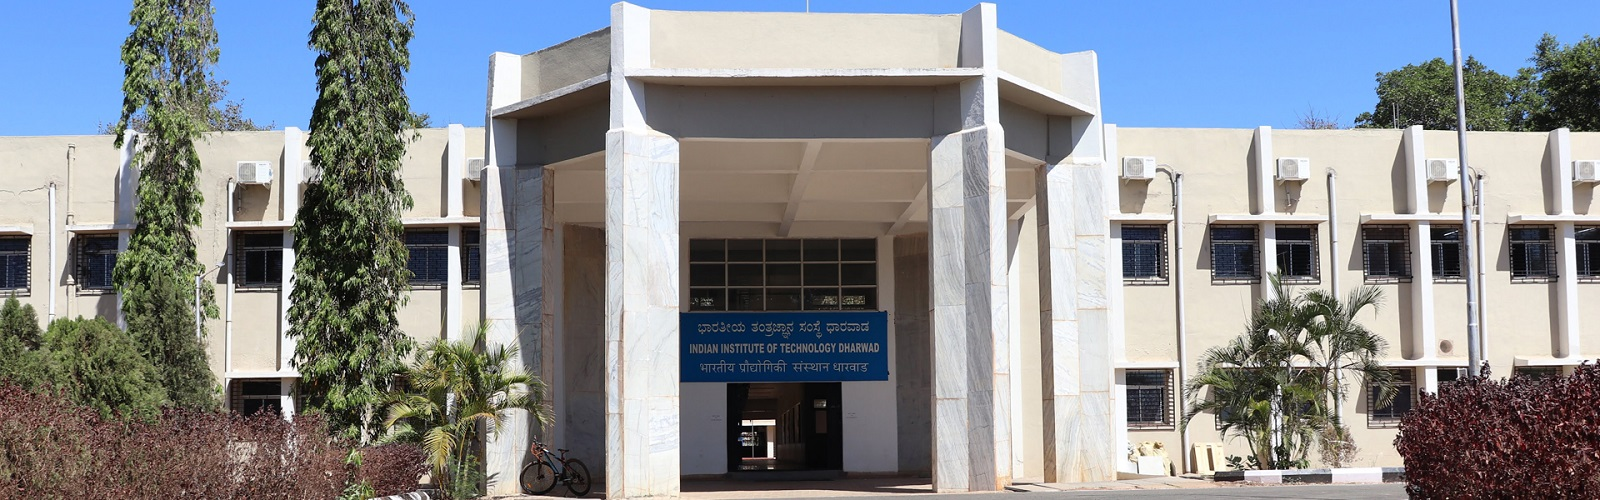 IIT (Indian Institute of Technology), Dharwad Image